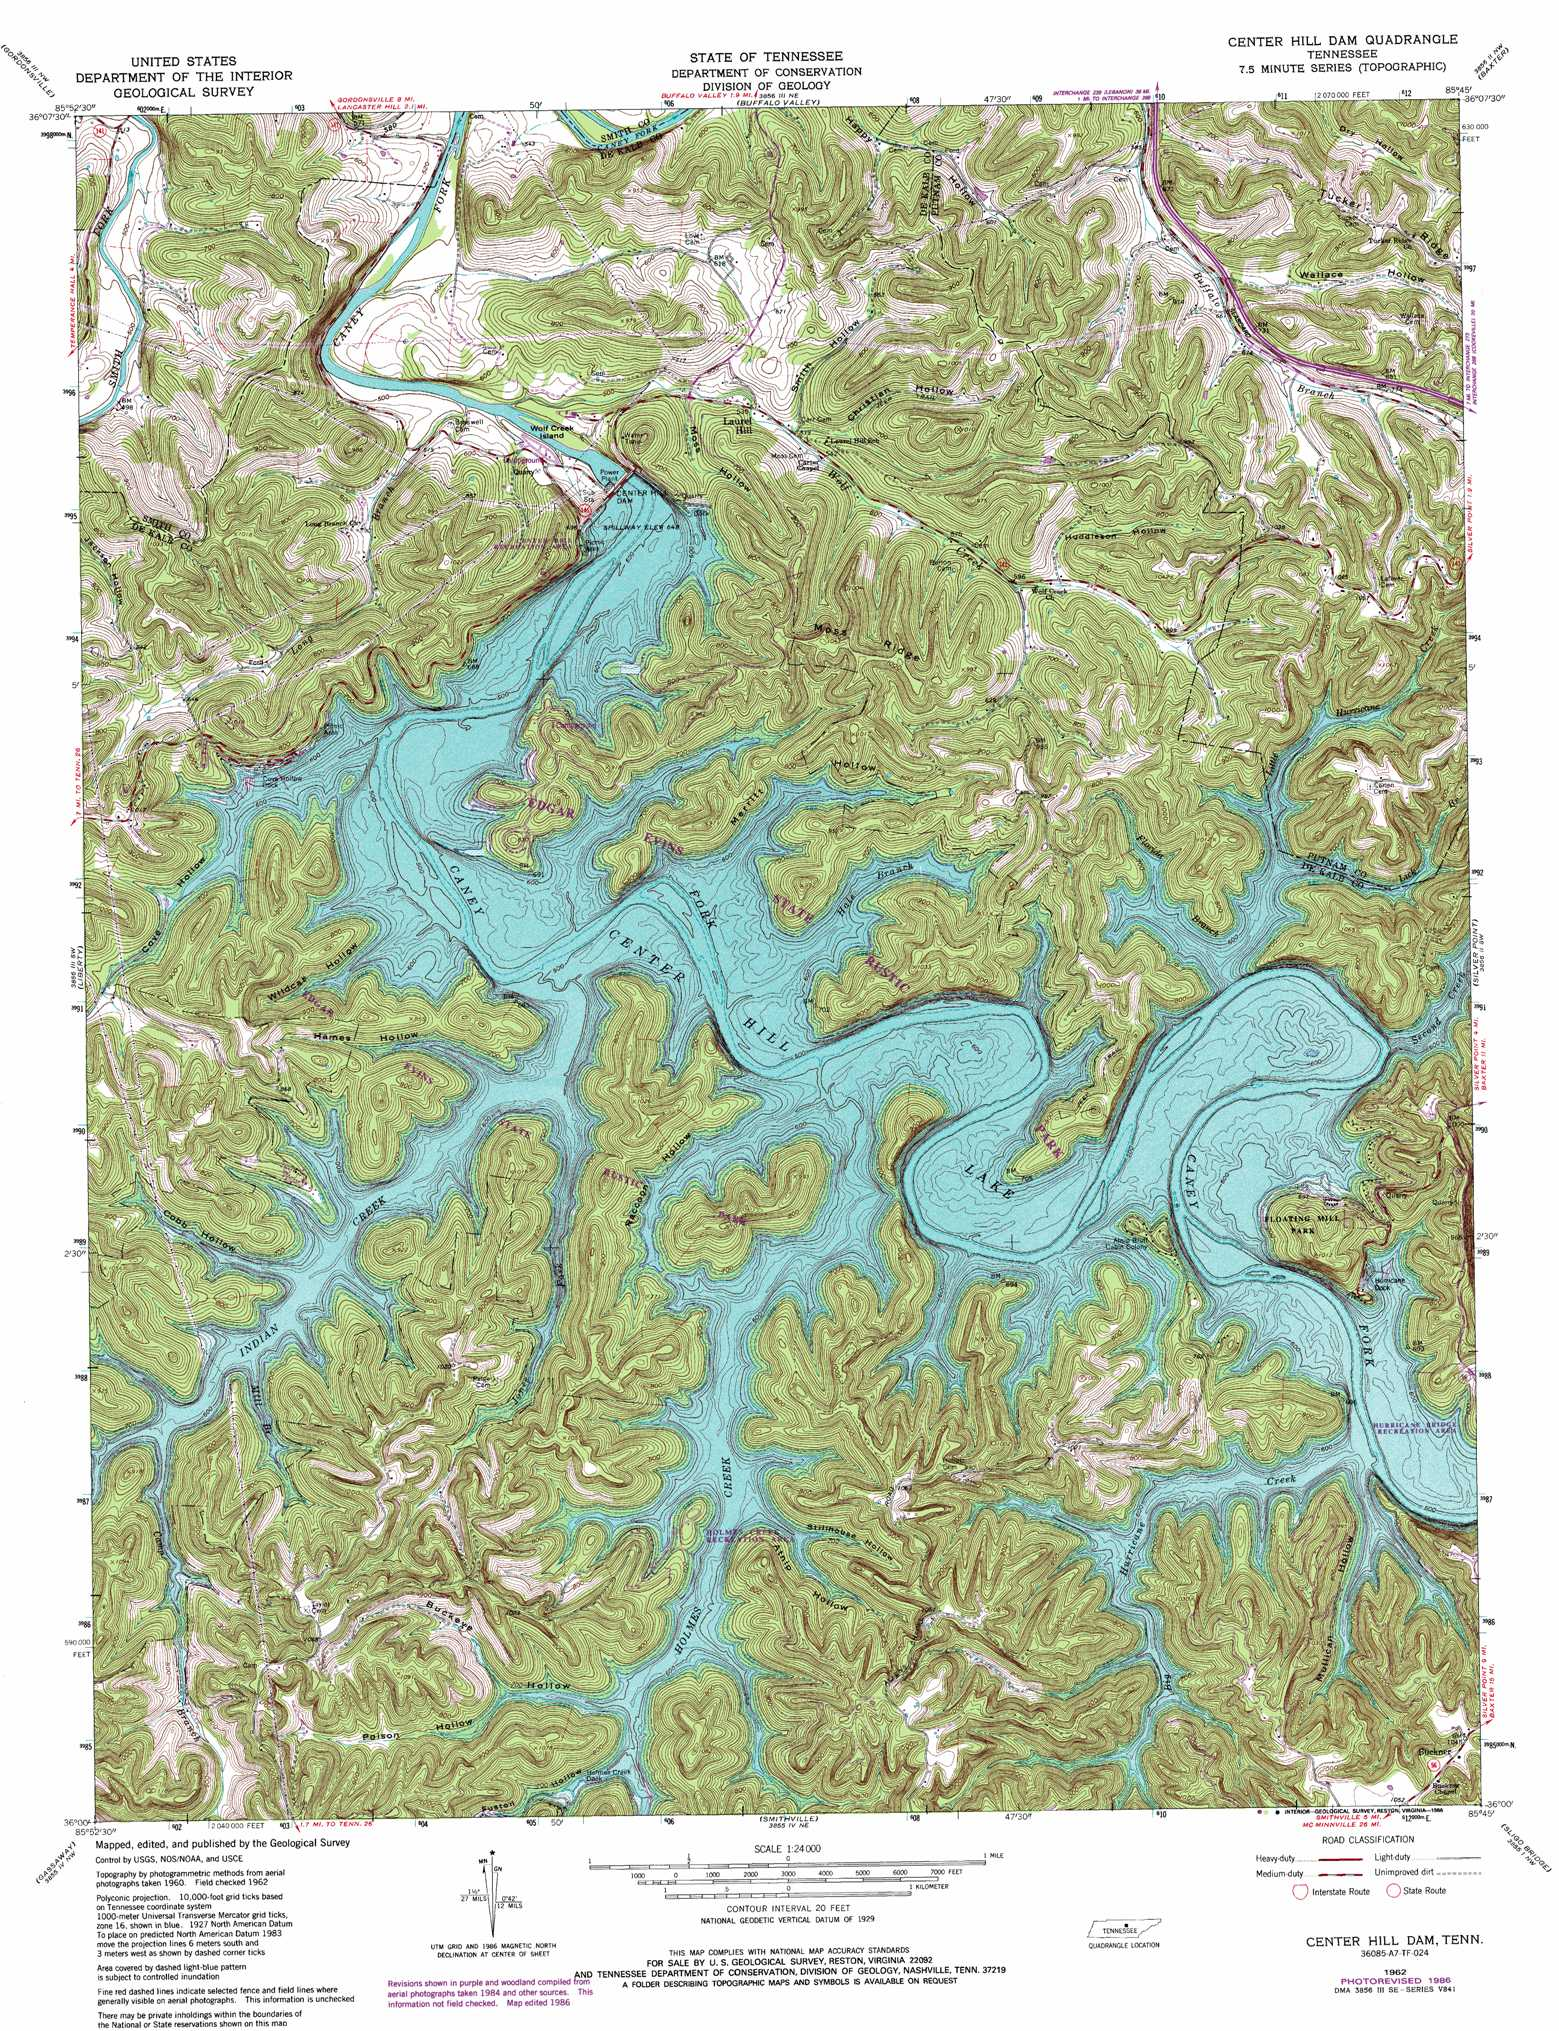 Center Hill Dam topographic map, TN   USGS Topo Quad 36085a7